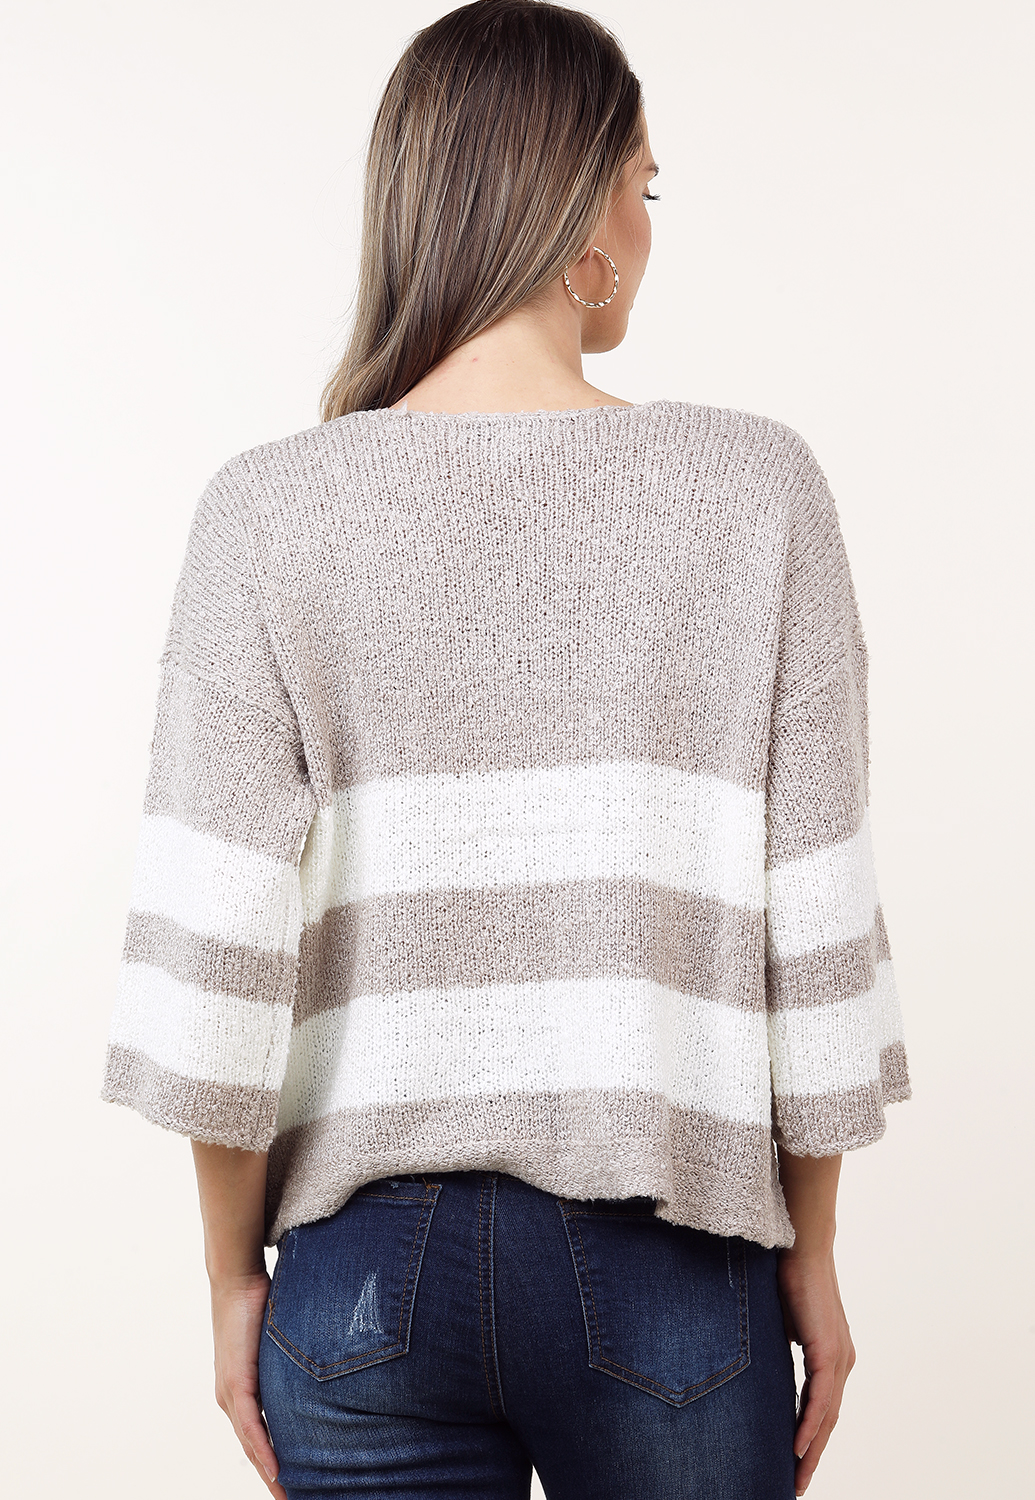 Colorblocked Knit Sweater